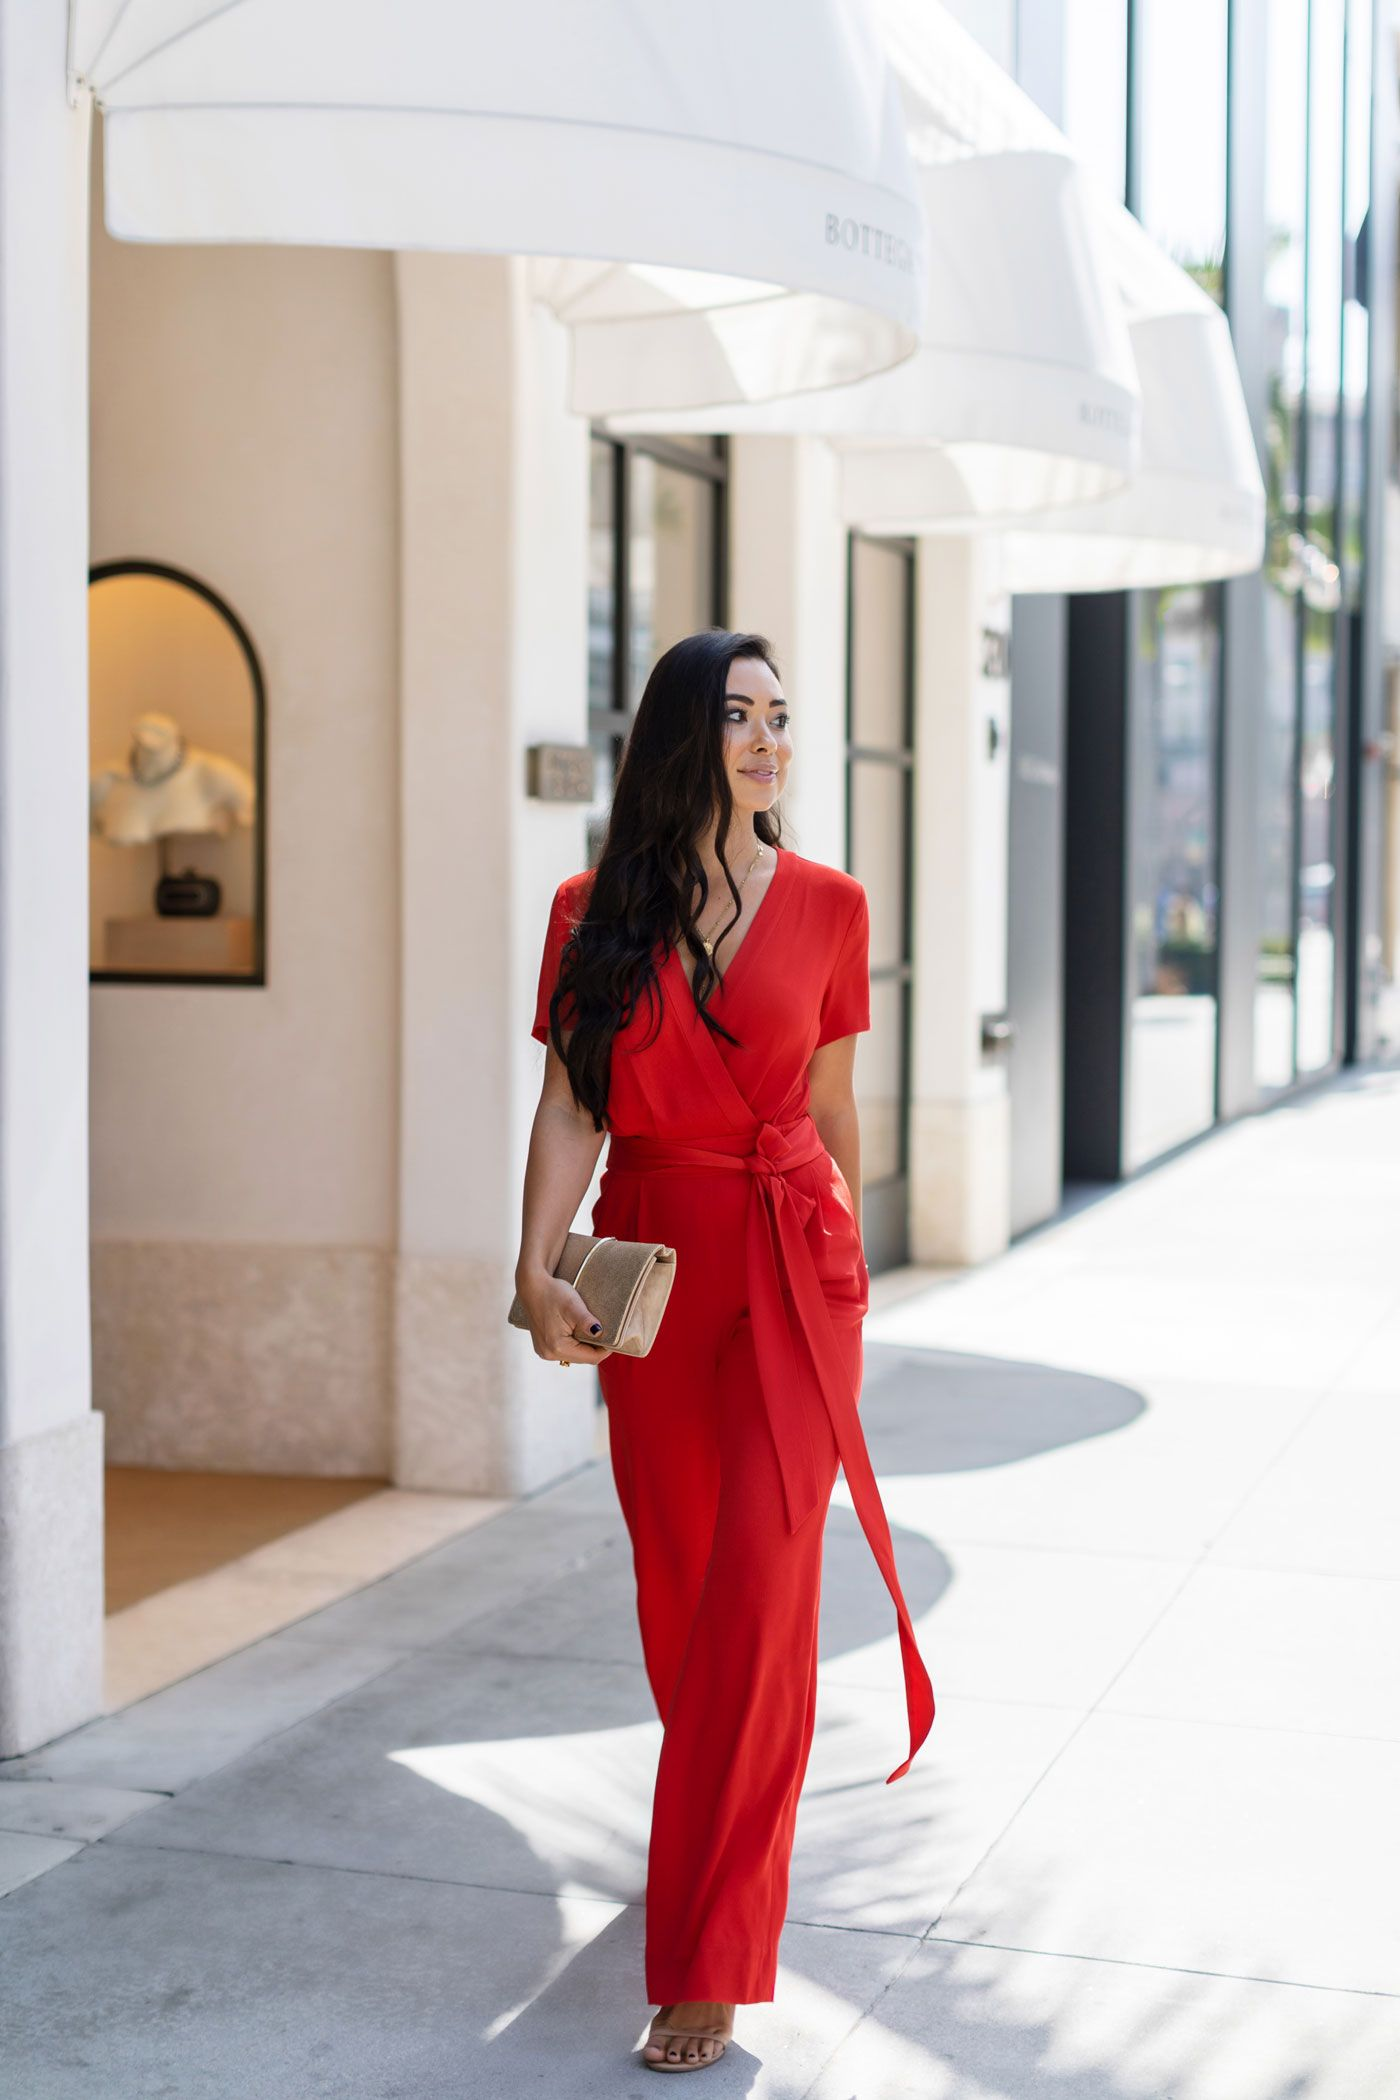 708f63be88a1 Diane Von Furstenberg Jumpsuit - With Love From Kat. Red Jumpsuit on Rodeo. Holiday  Party Outfit